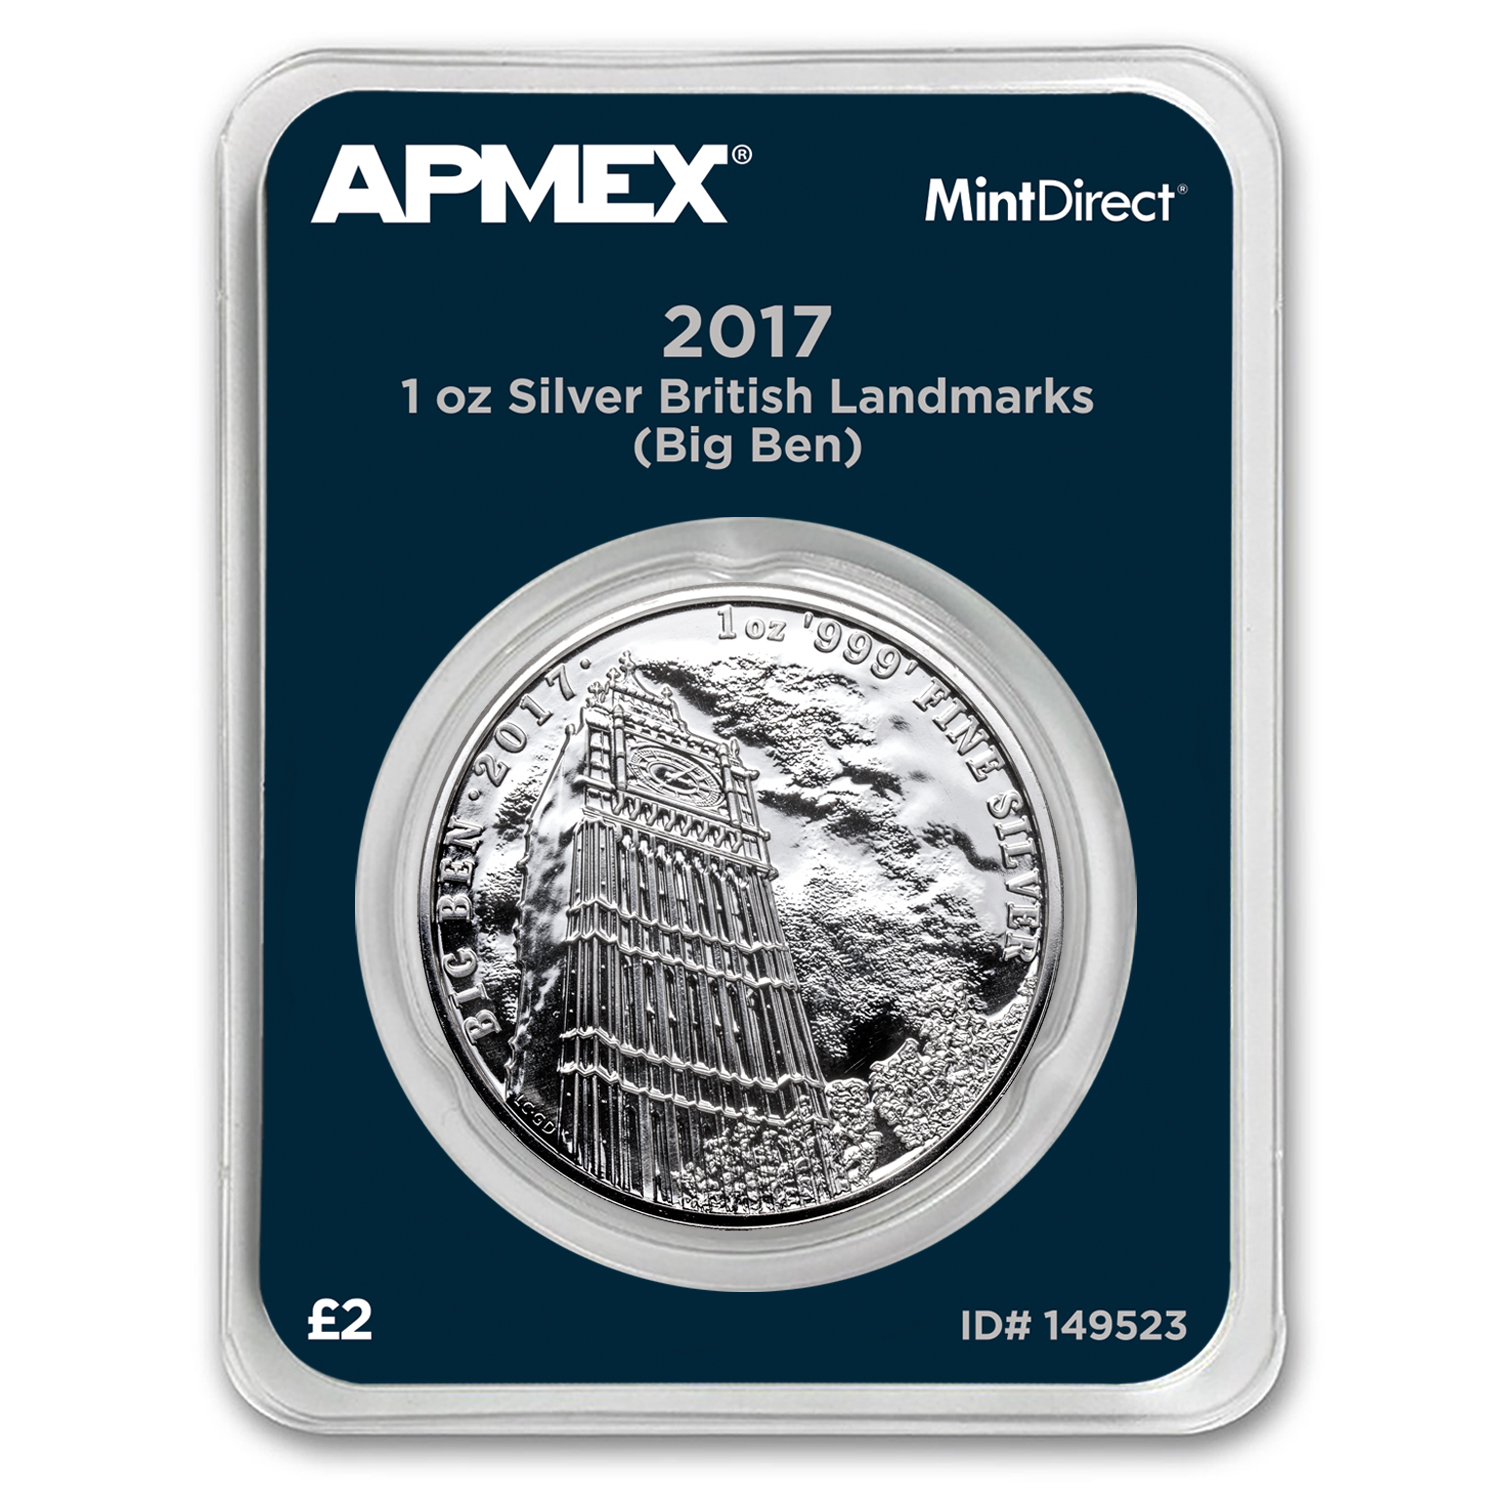 2017 1 oz Silver Landmarks of Britain Big Ben (MintDirect®)